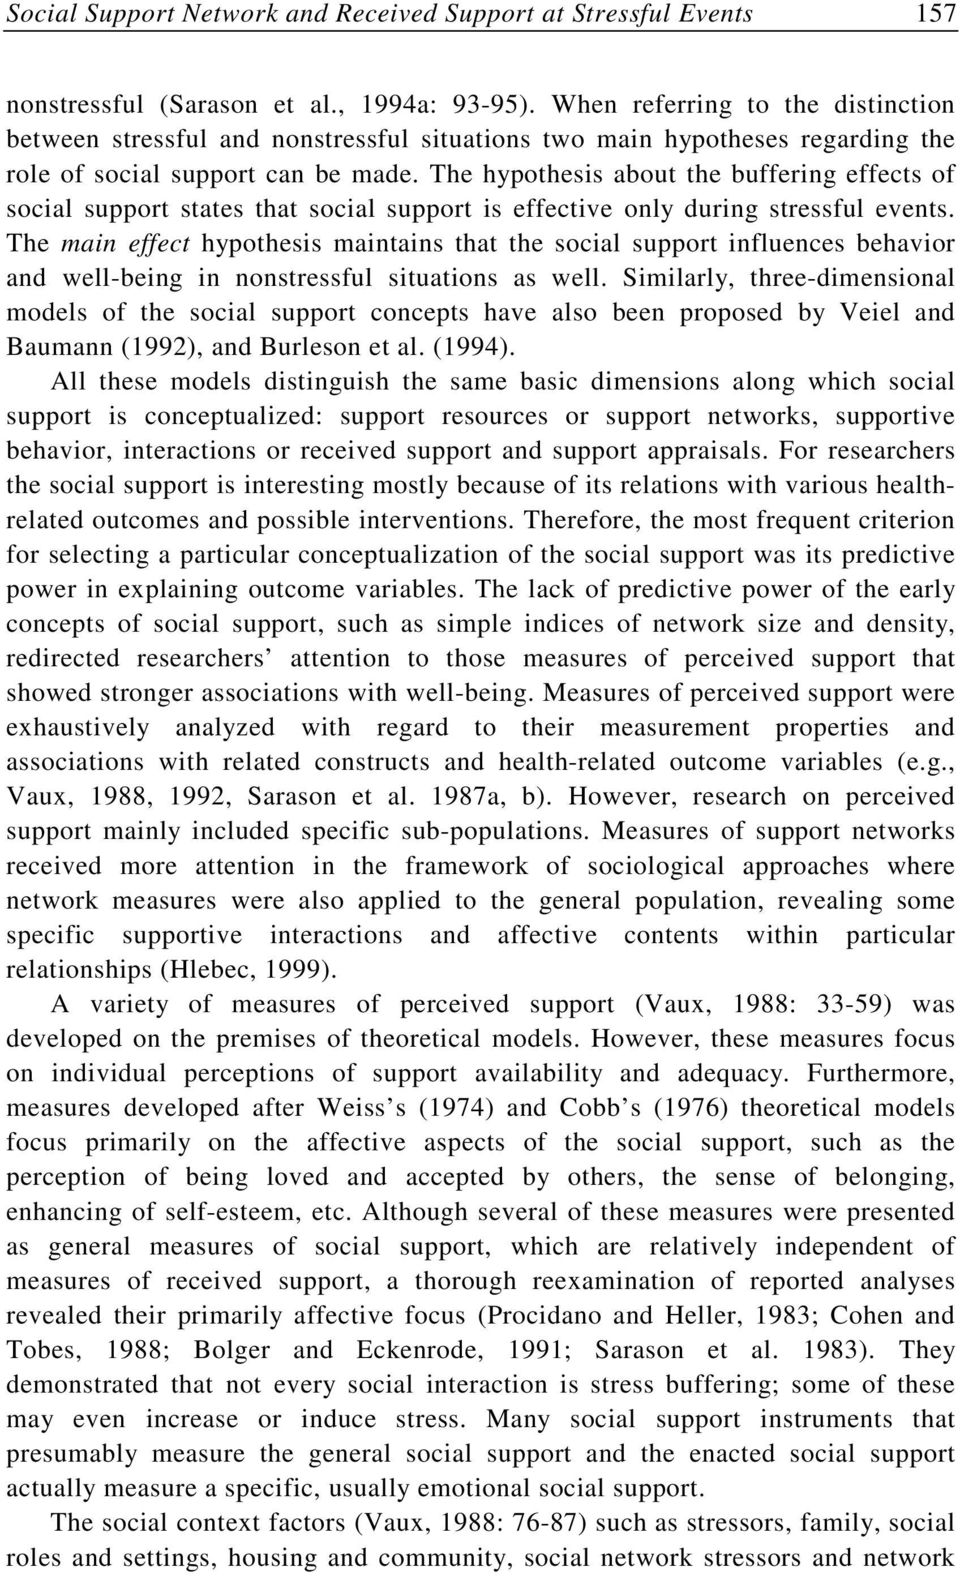 The hypothesis about the buffering effects of social support states that social support is effective only during stressful events.